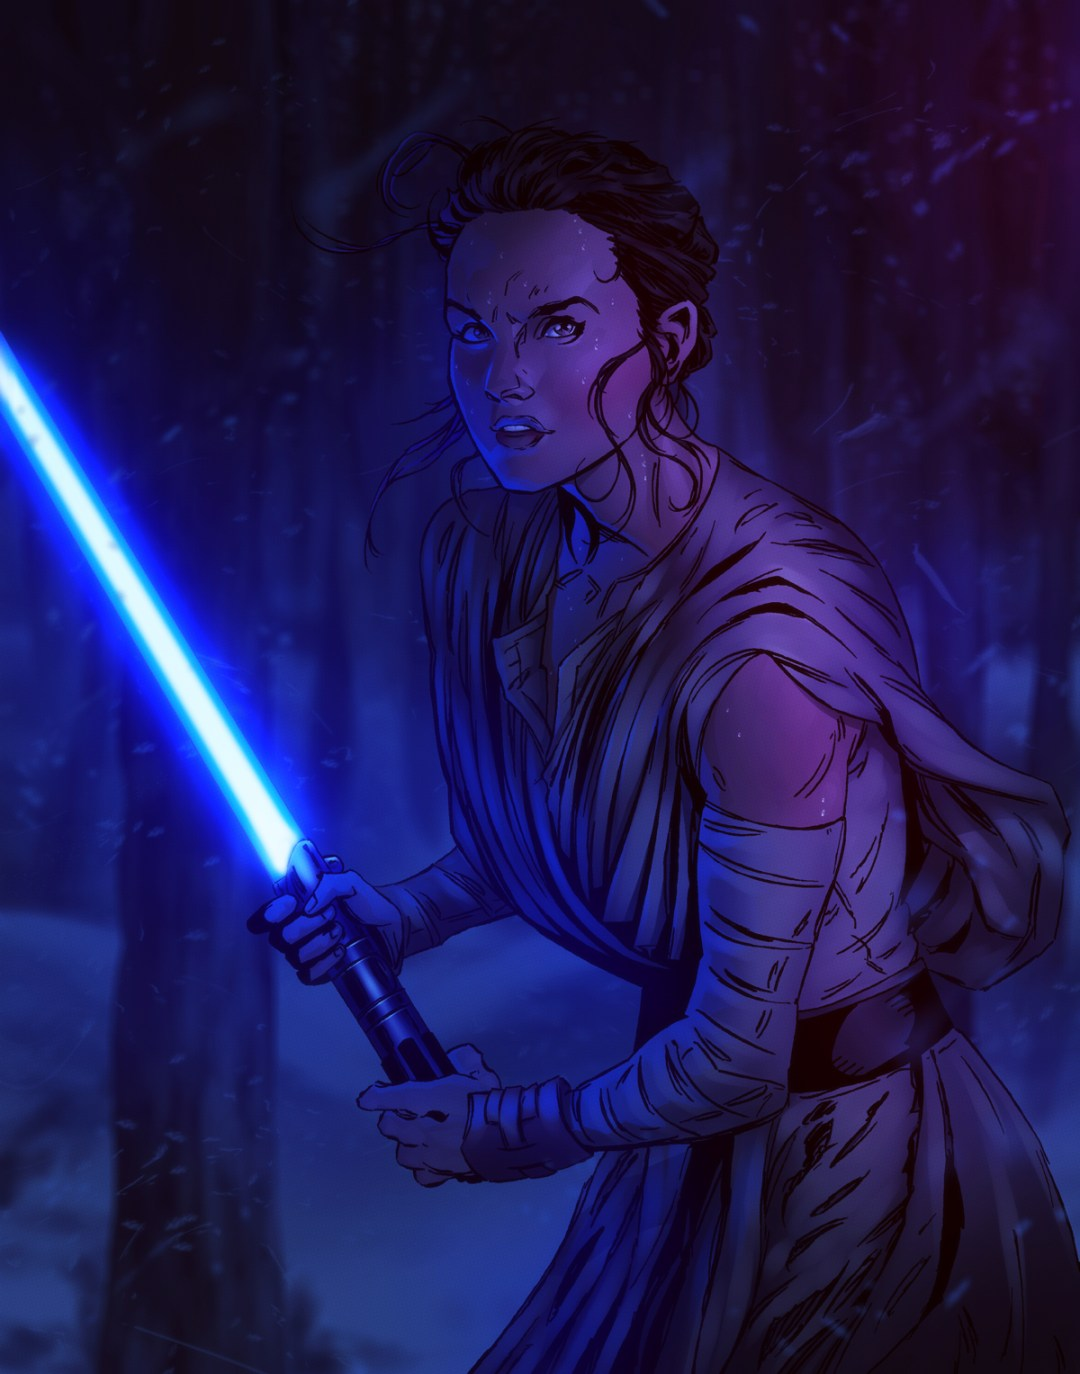 Rey by Tyler Cairns